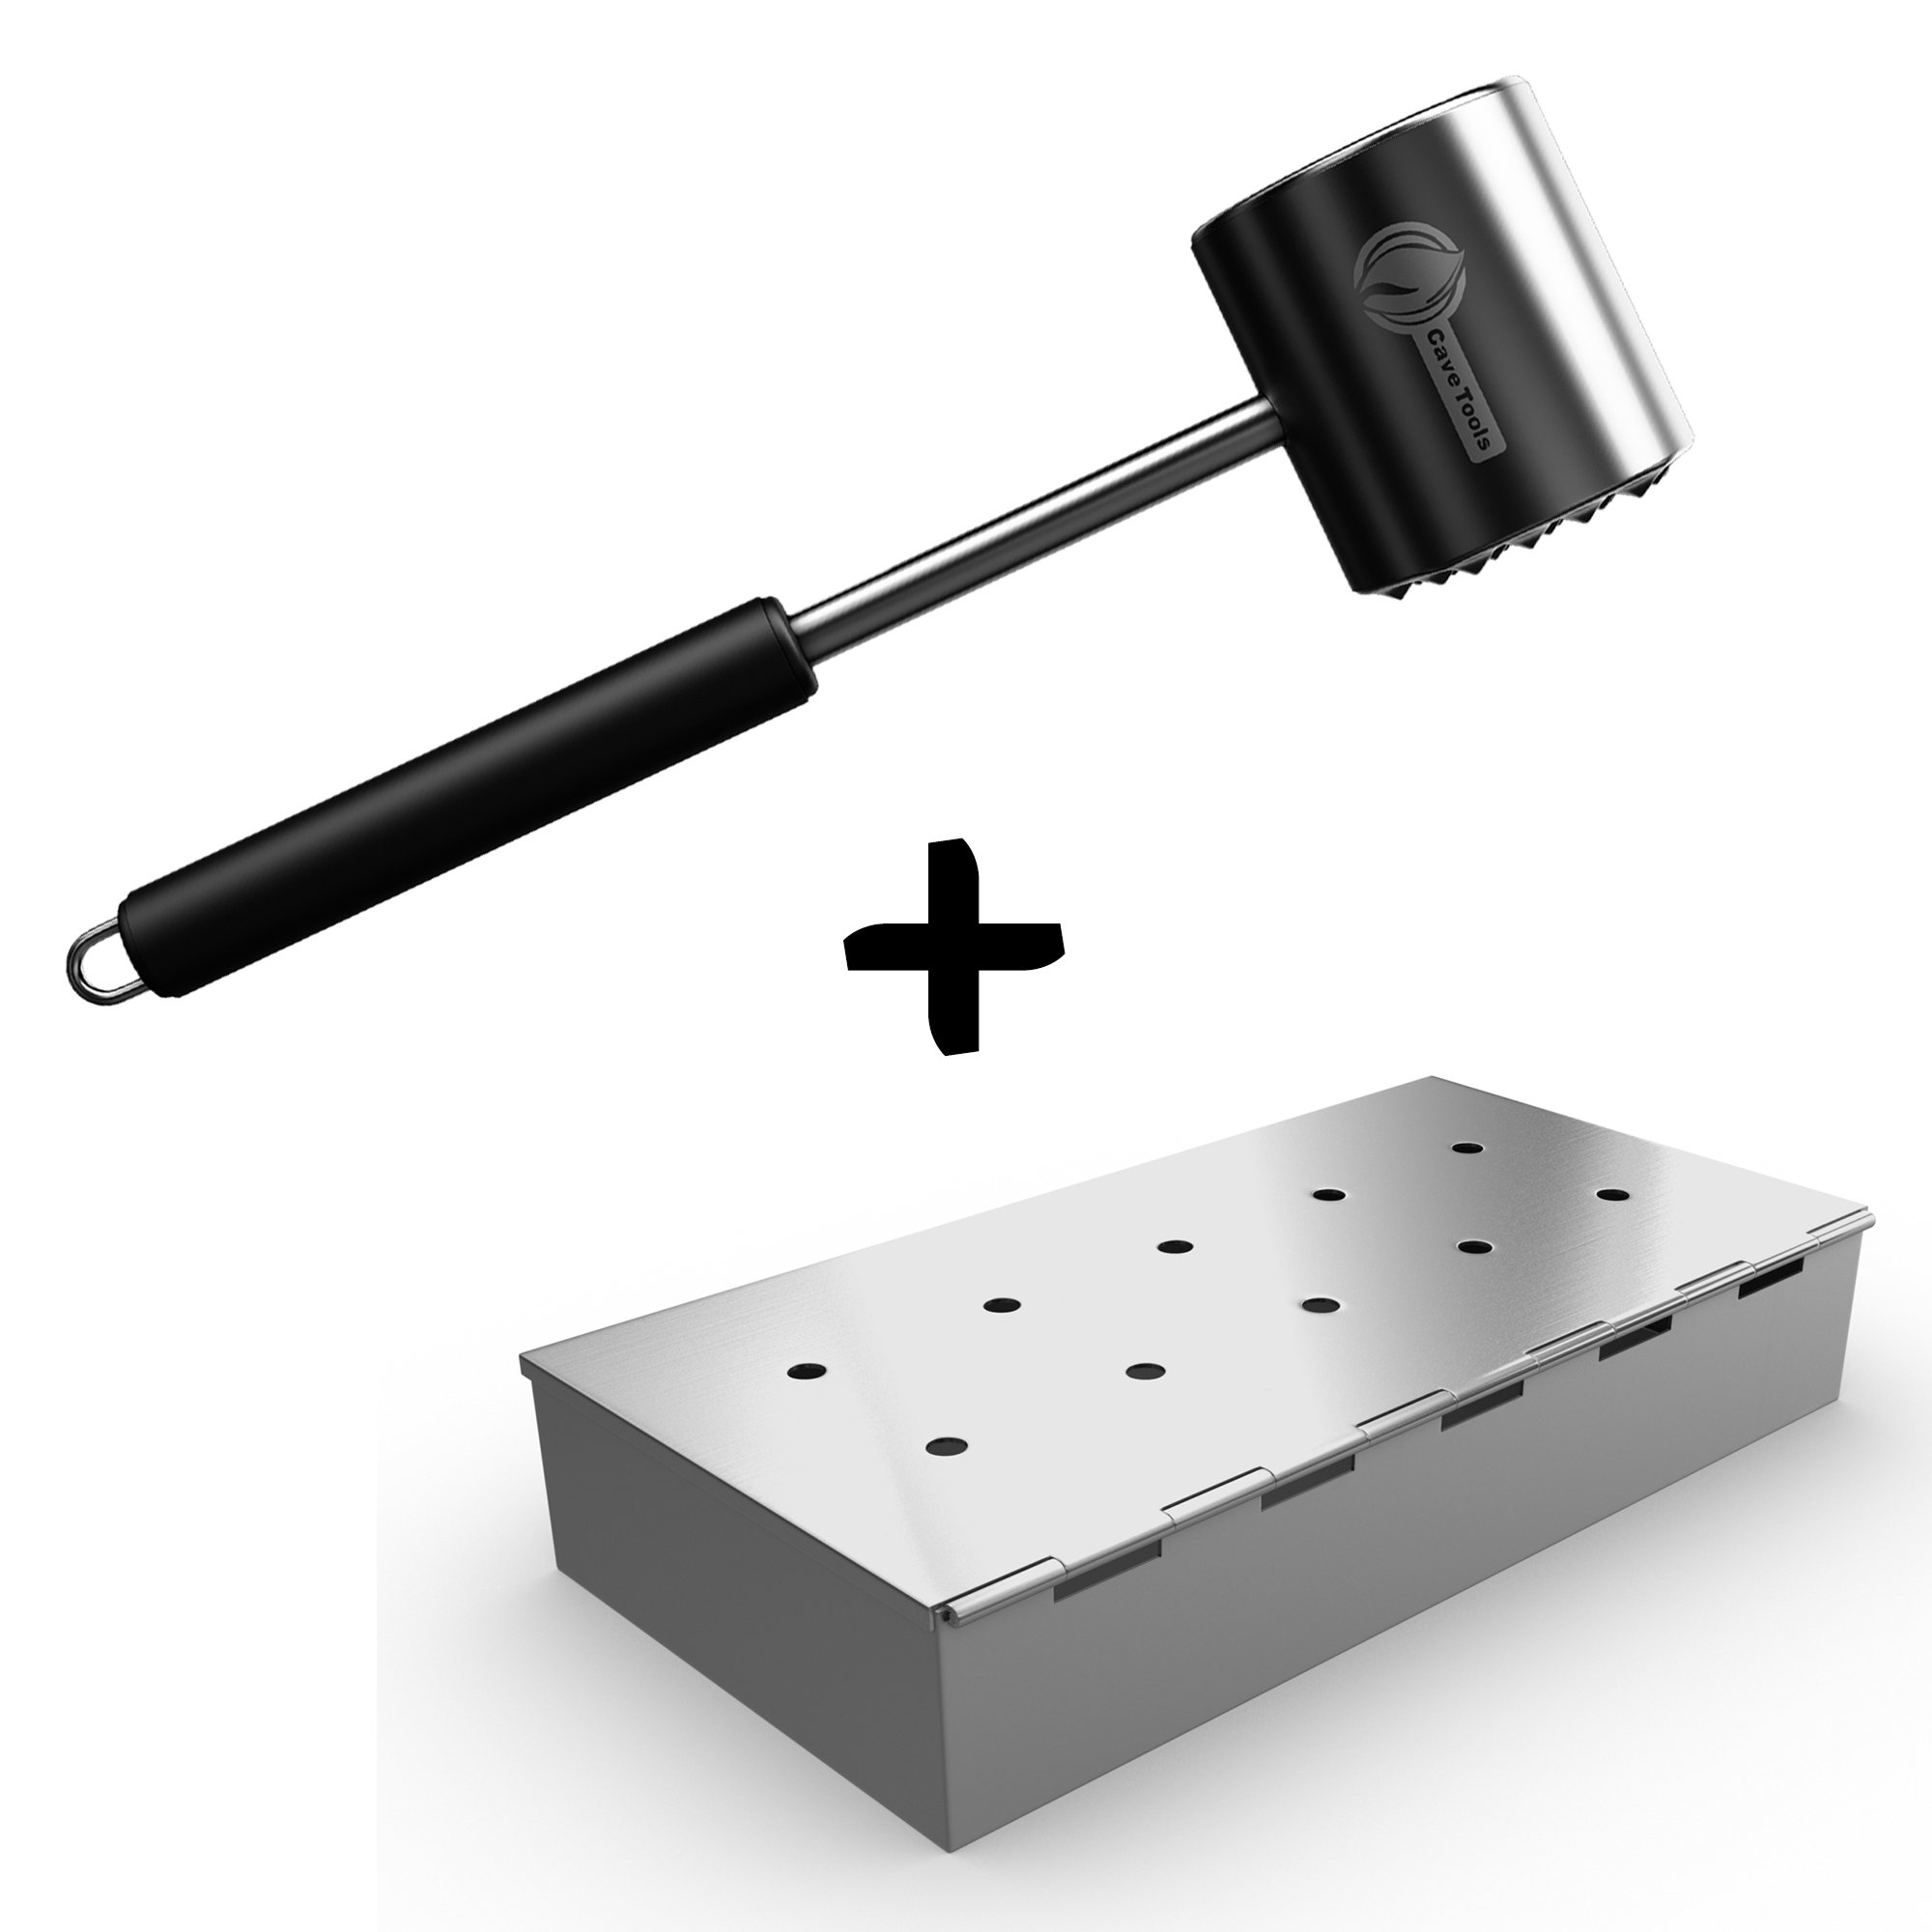 Tenderizer Mallet + Smoker Box for BBQ Grill Wood Chips - 25% Thicker Stainless Steel Won't Warp - Charcoal & Gas Barbecue Meat Smoking Hinged Lid - Grilling Accessories Gift for Dad